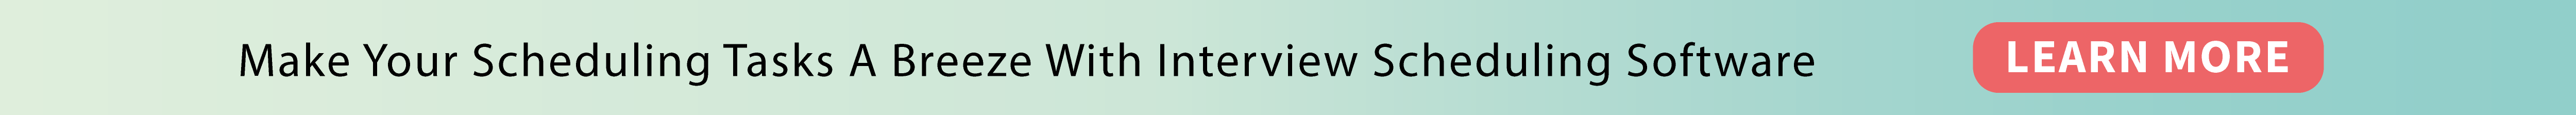 Interview Scheduling Banner